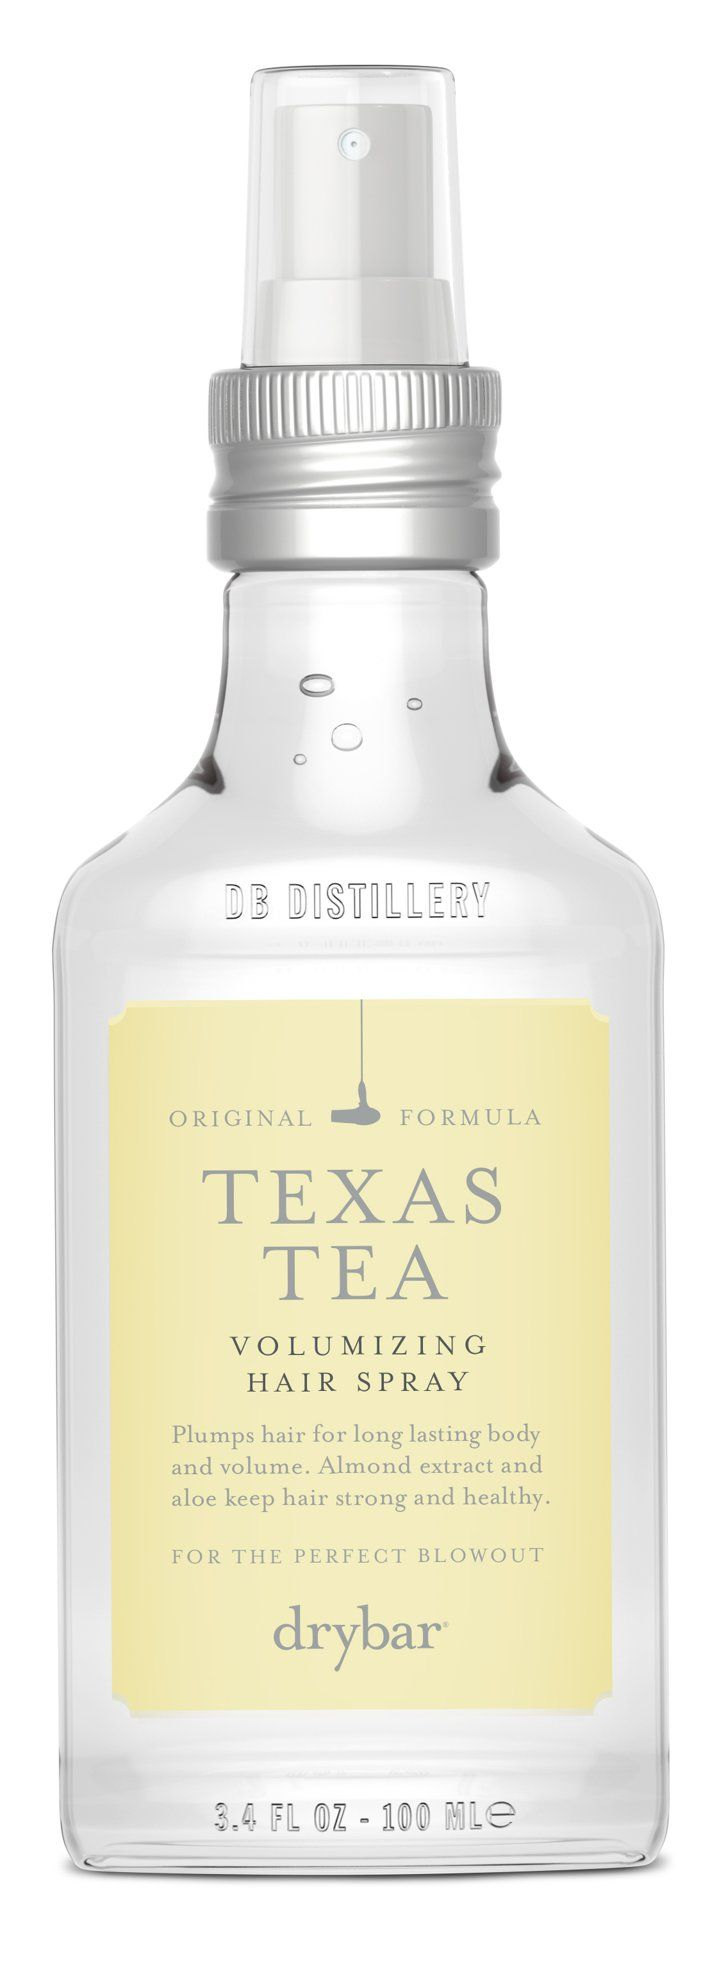 Pin for Later: How to Get Texas Hair in a Bottle, Drybar Style